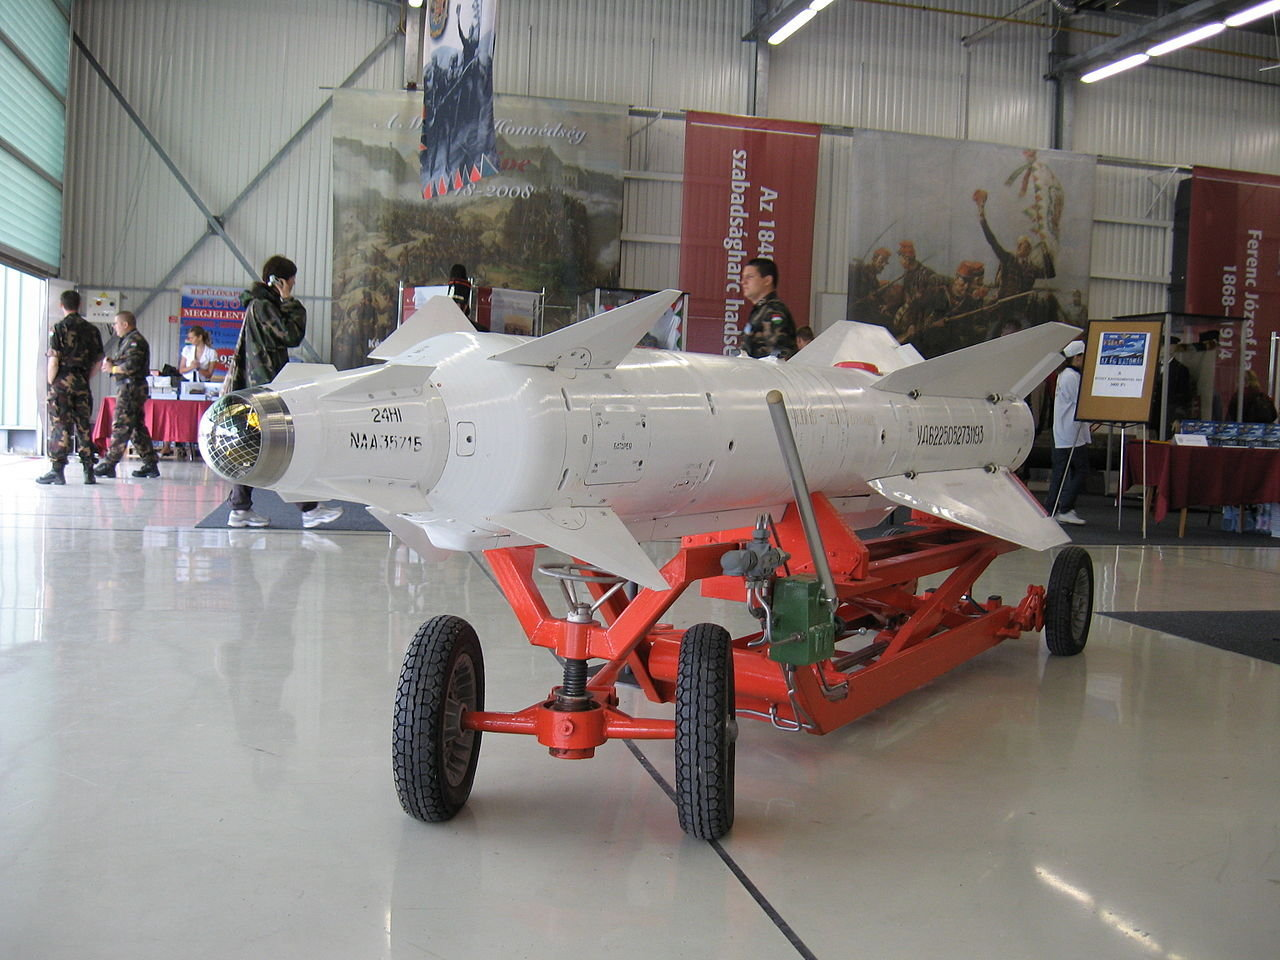 Training version of the Kh-29L laser guided air to surface missile